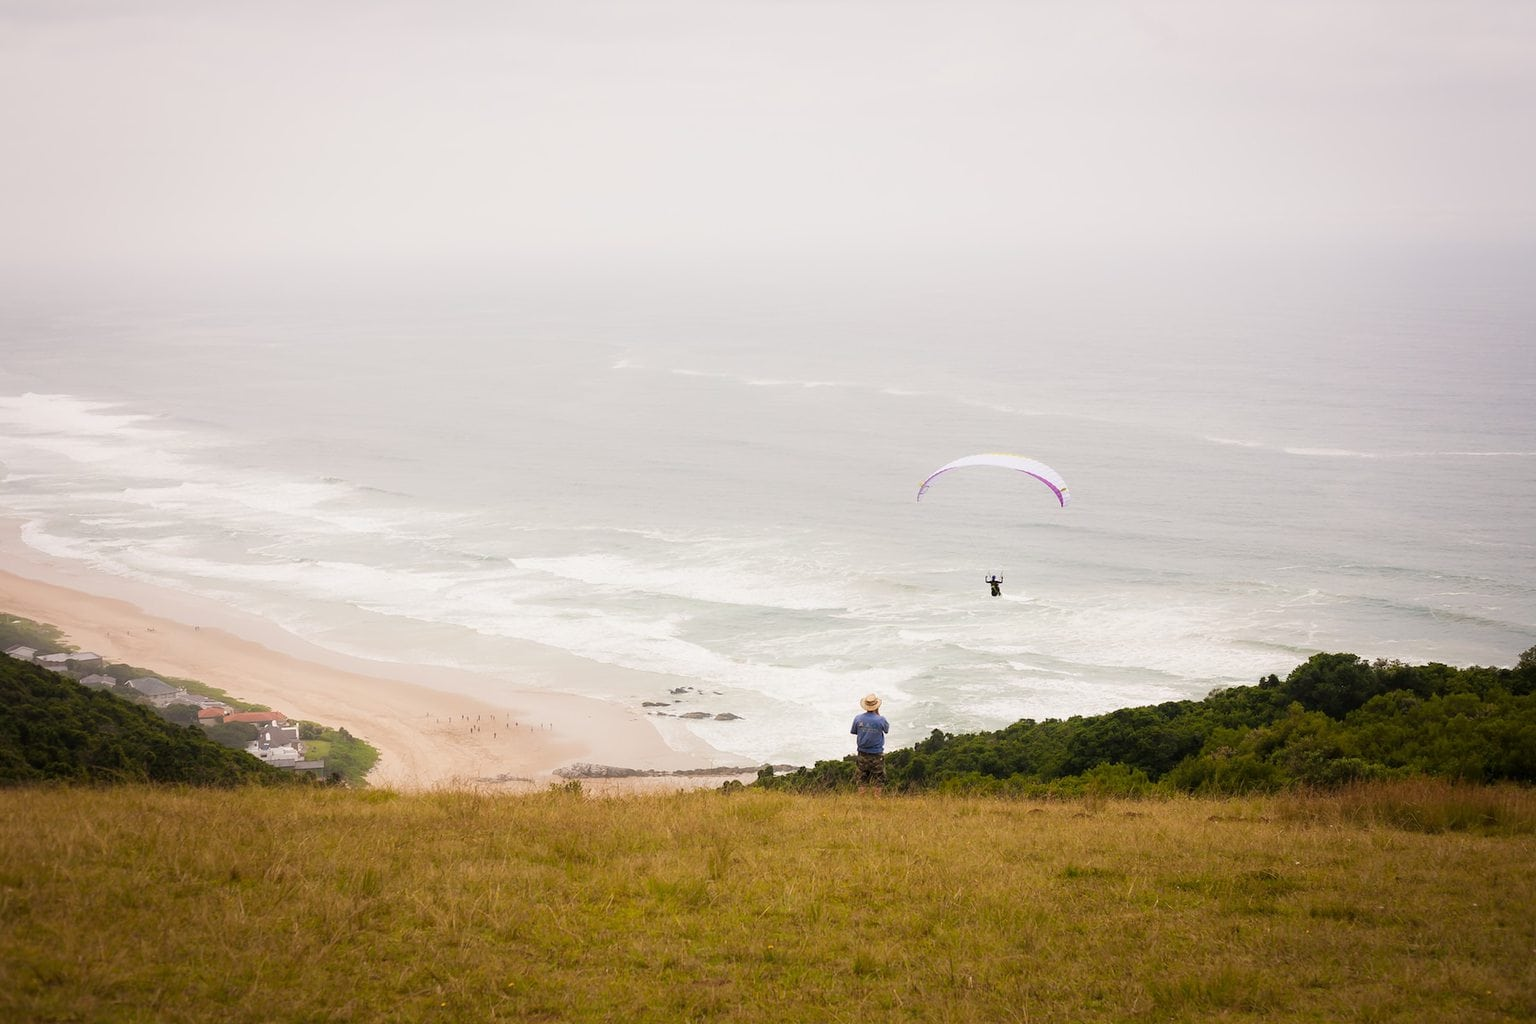 Paragliding base near the Map of Africa in the Wilderness